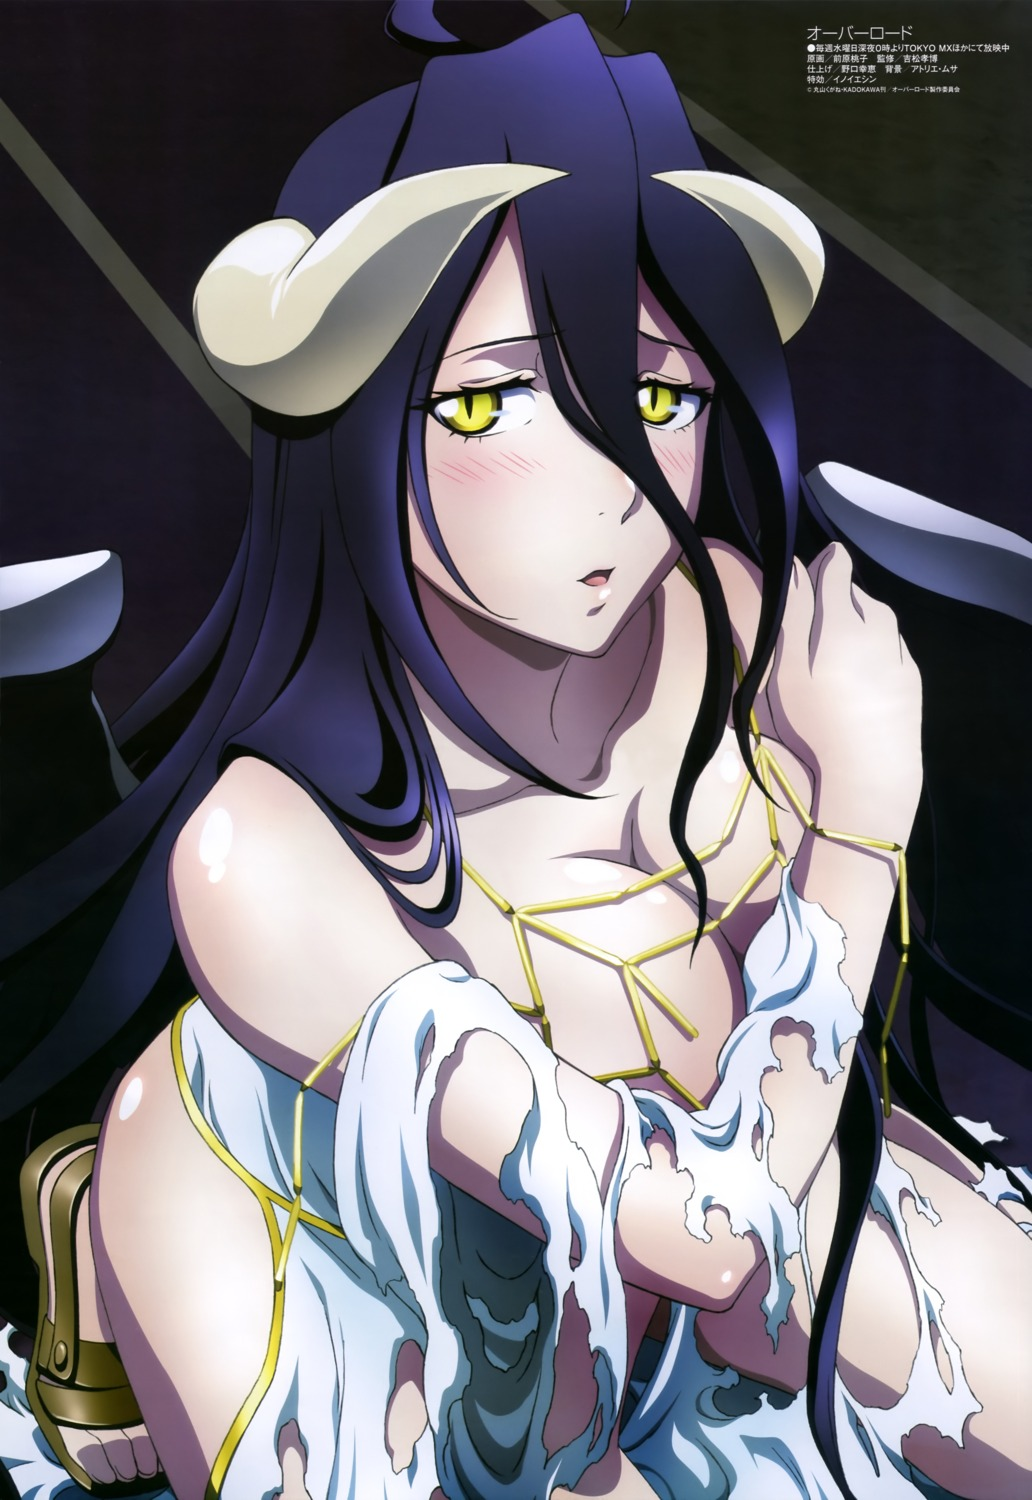 albedo_(overlord) breast_hold cleavage dress horns maehara_momoko overlord torn_clothes wings